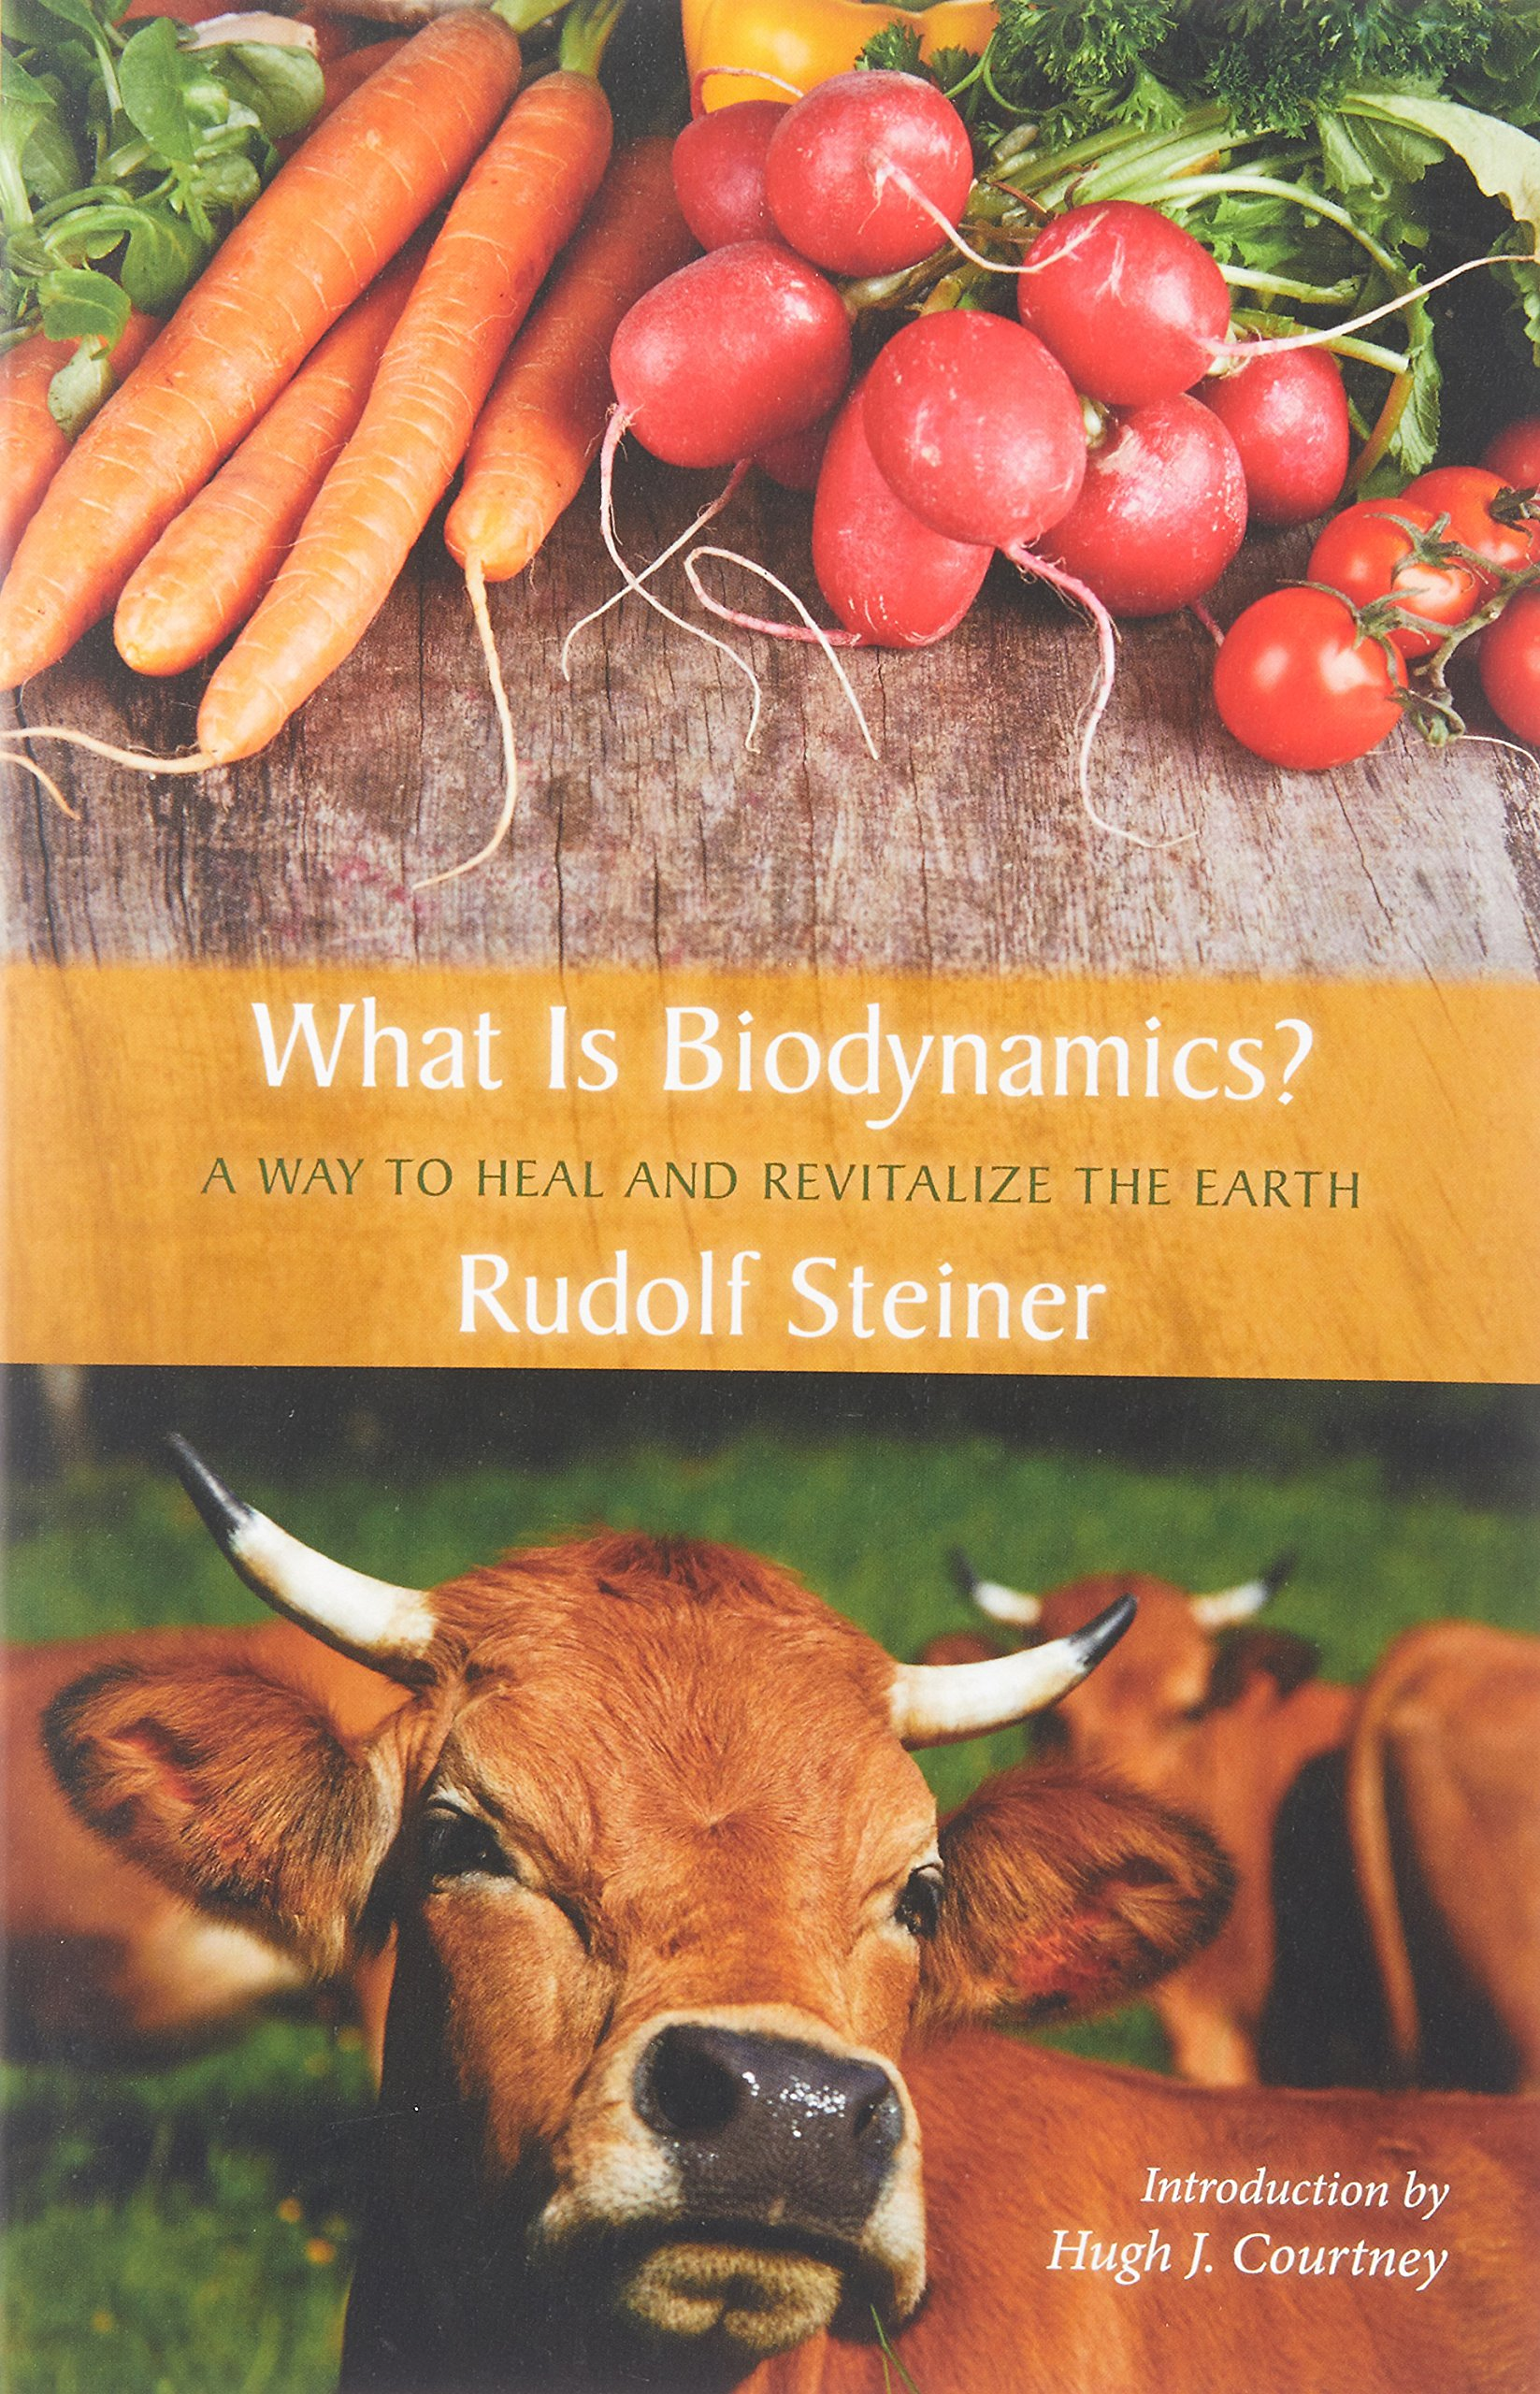 What Is Biodynamics?: A Way to Heal and Revitalize the Earth